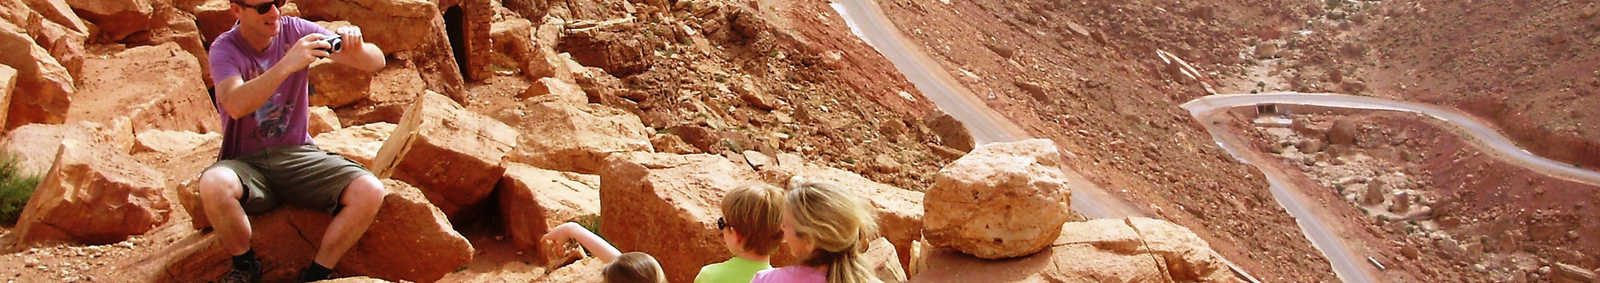 Family in the High Atlas Mountains